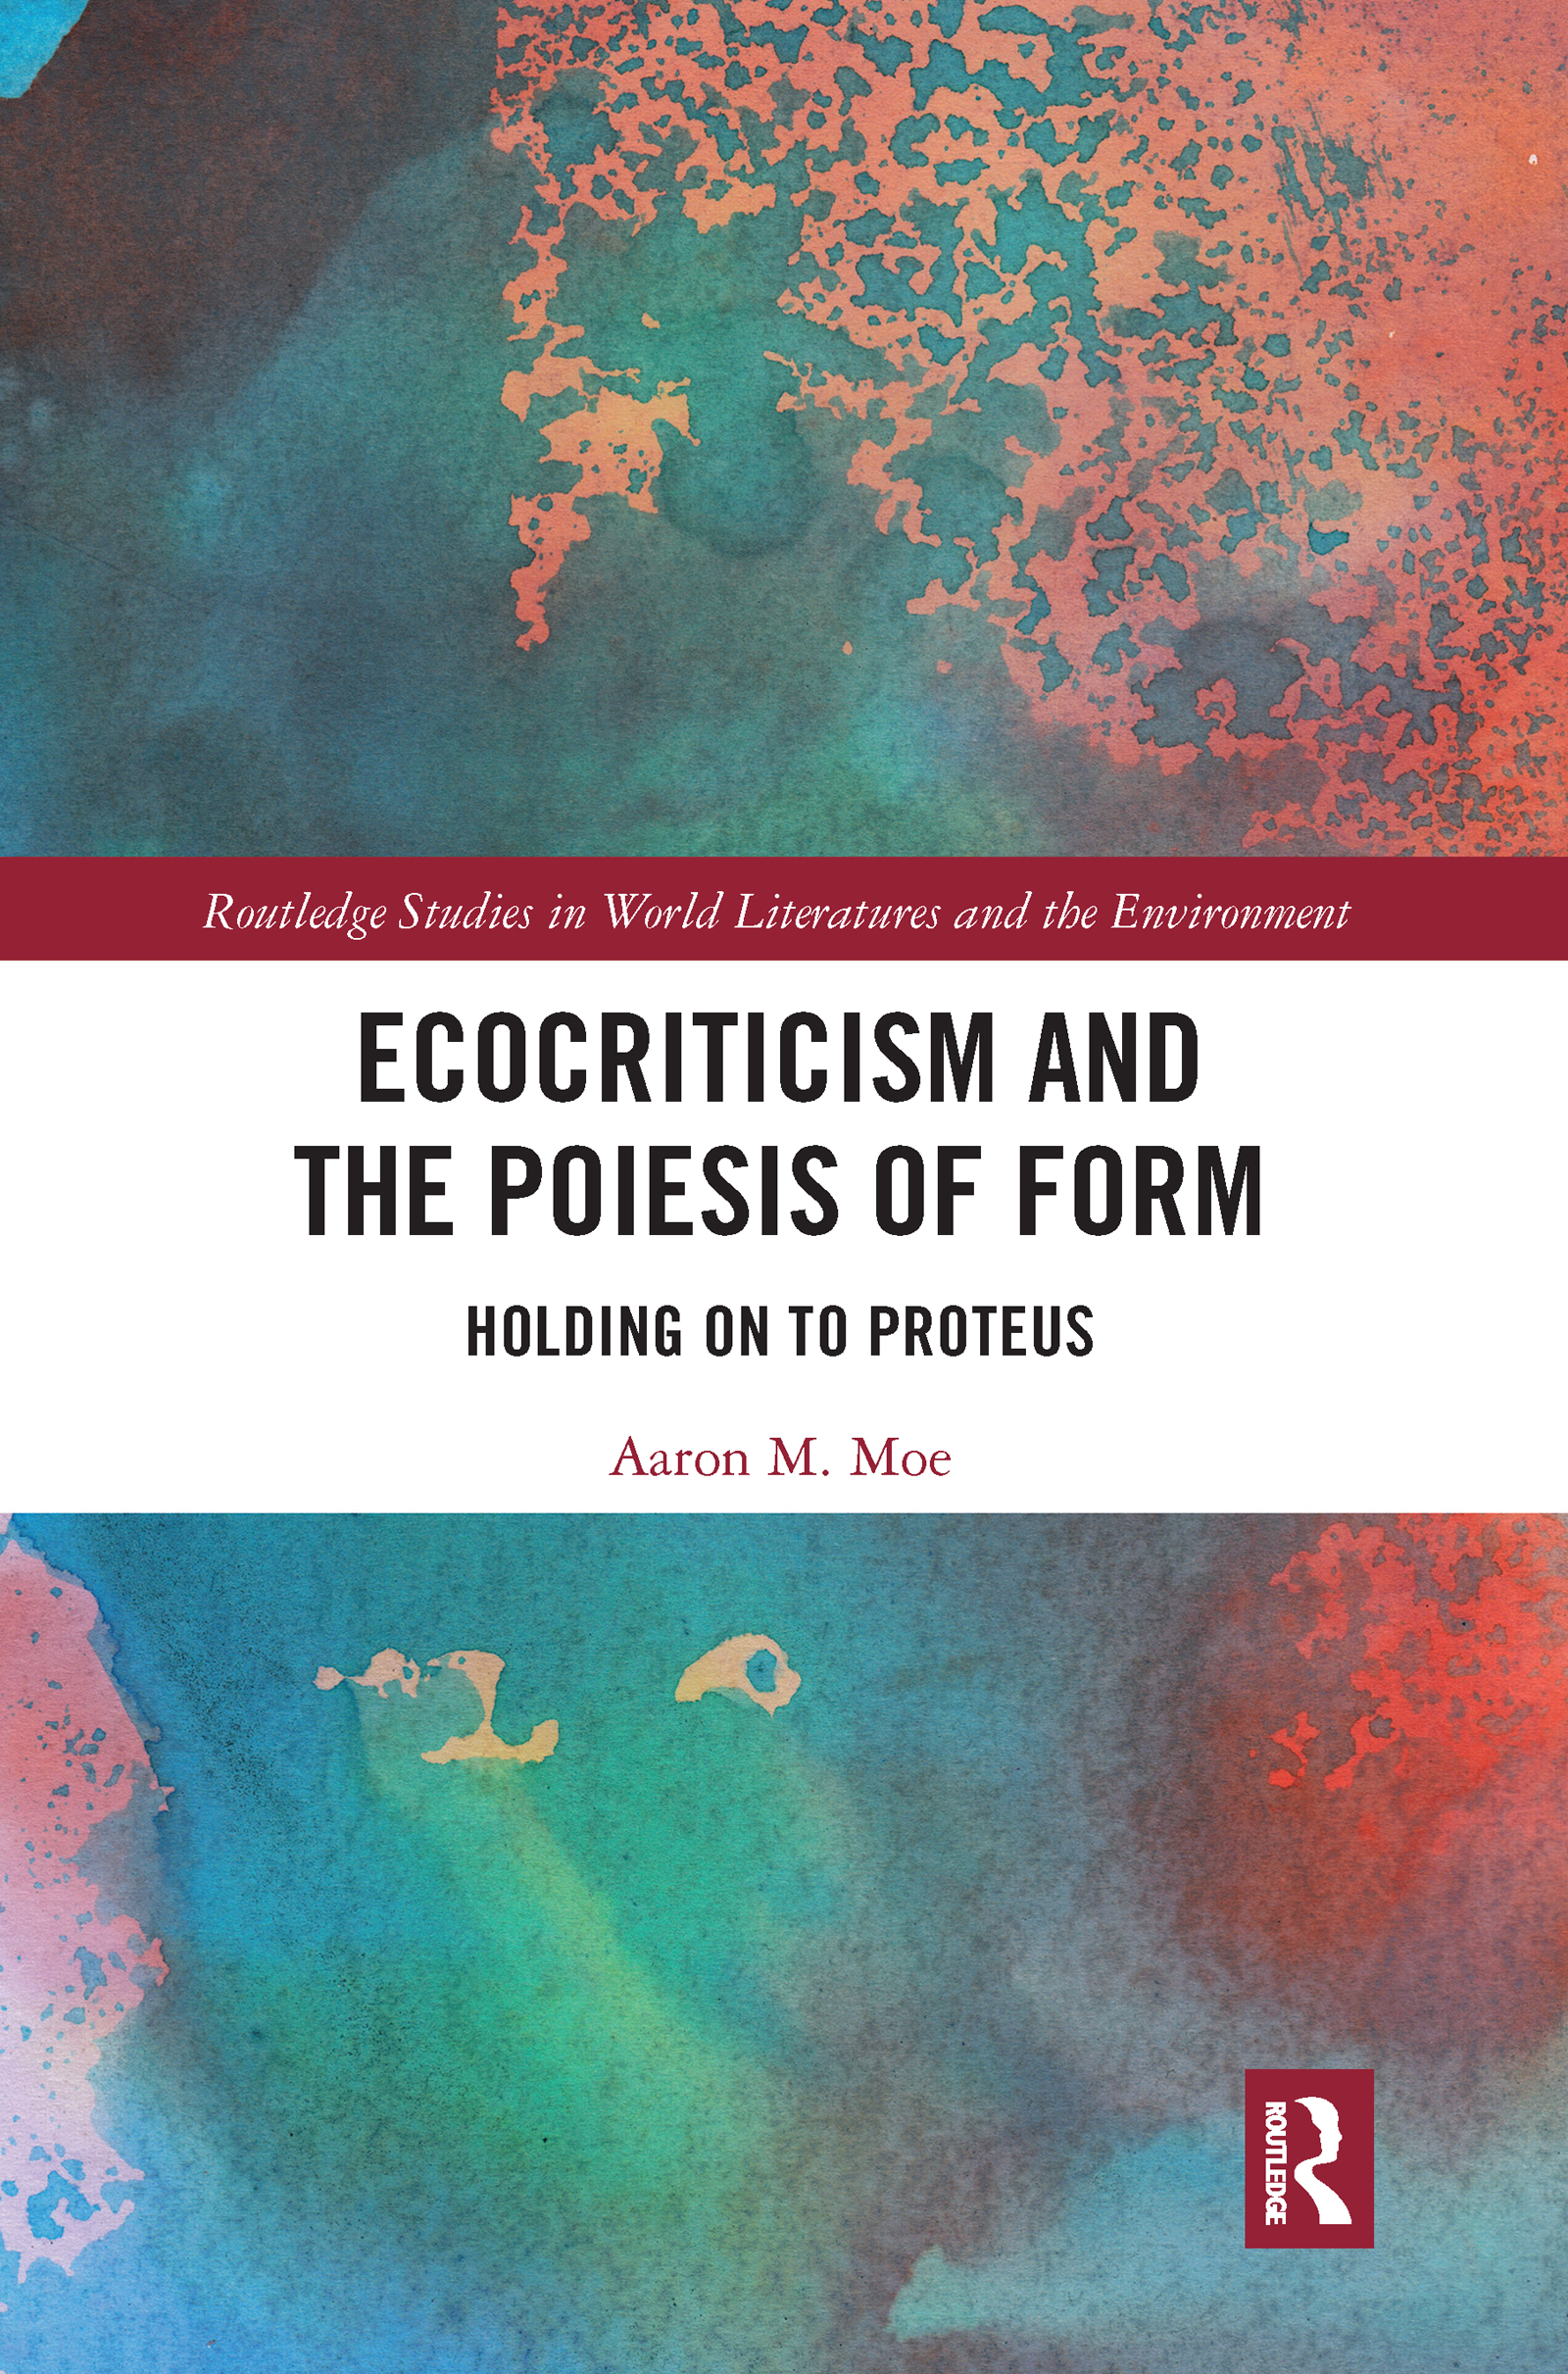 Ecocriticism and the Poiesis of Form